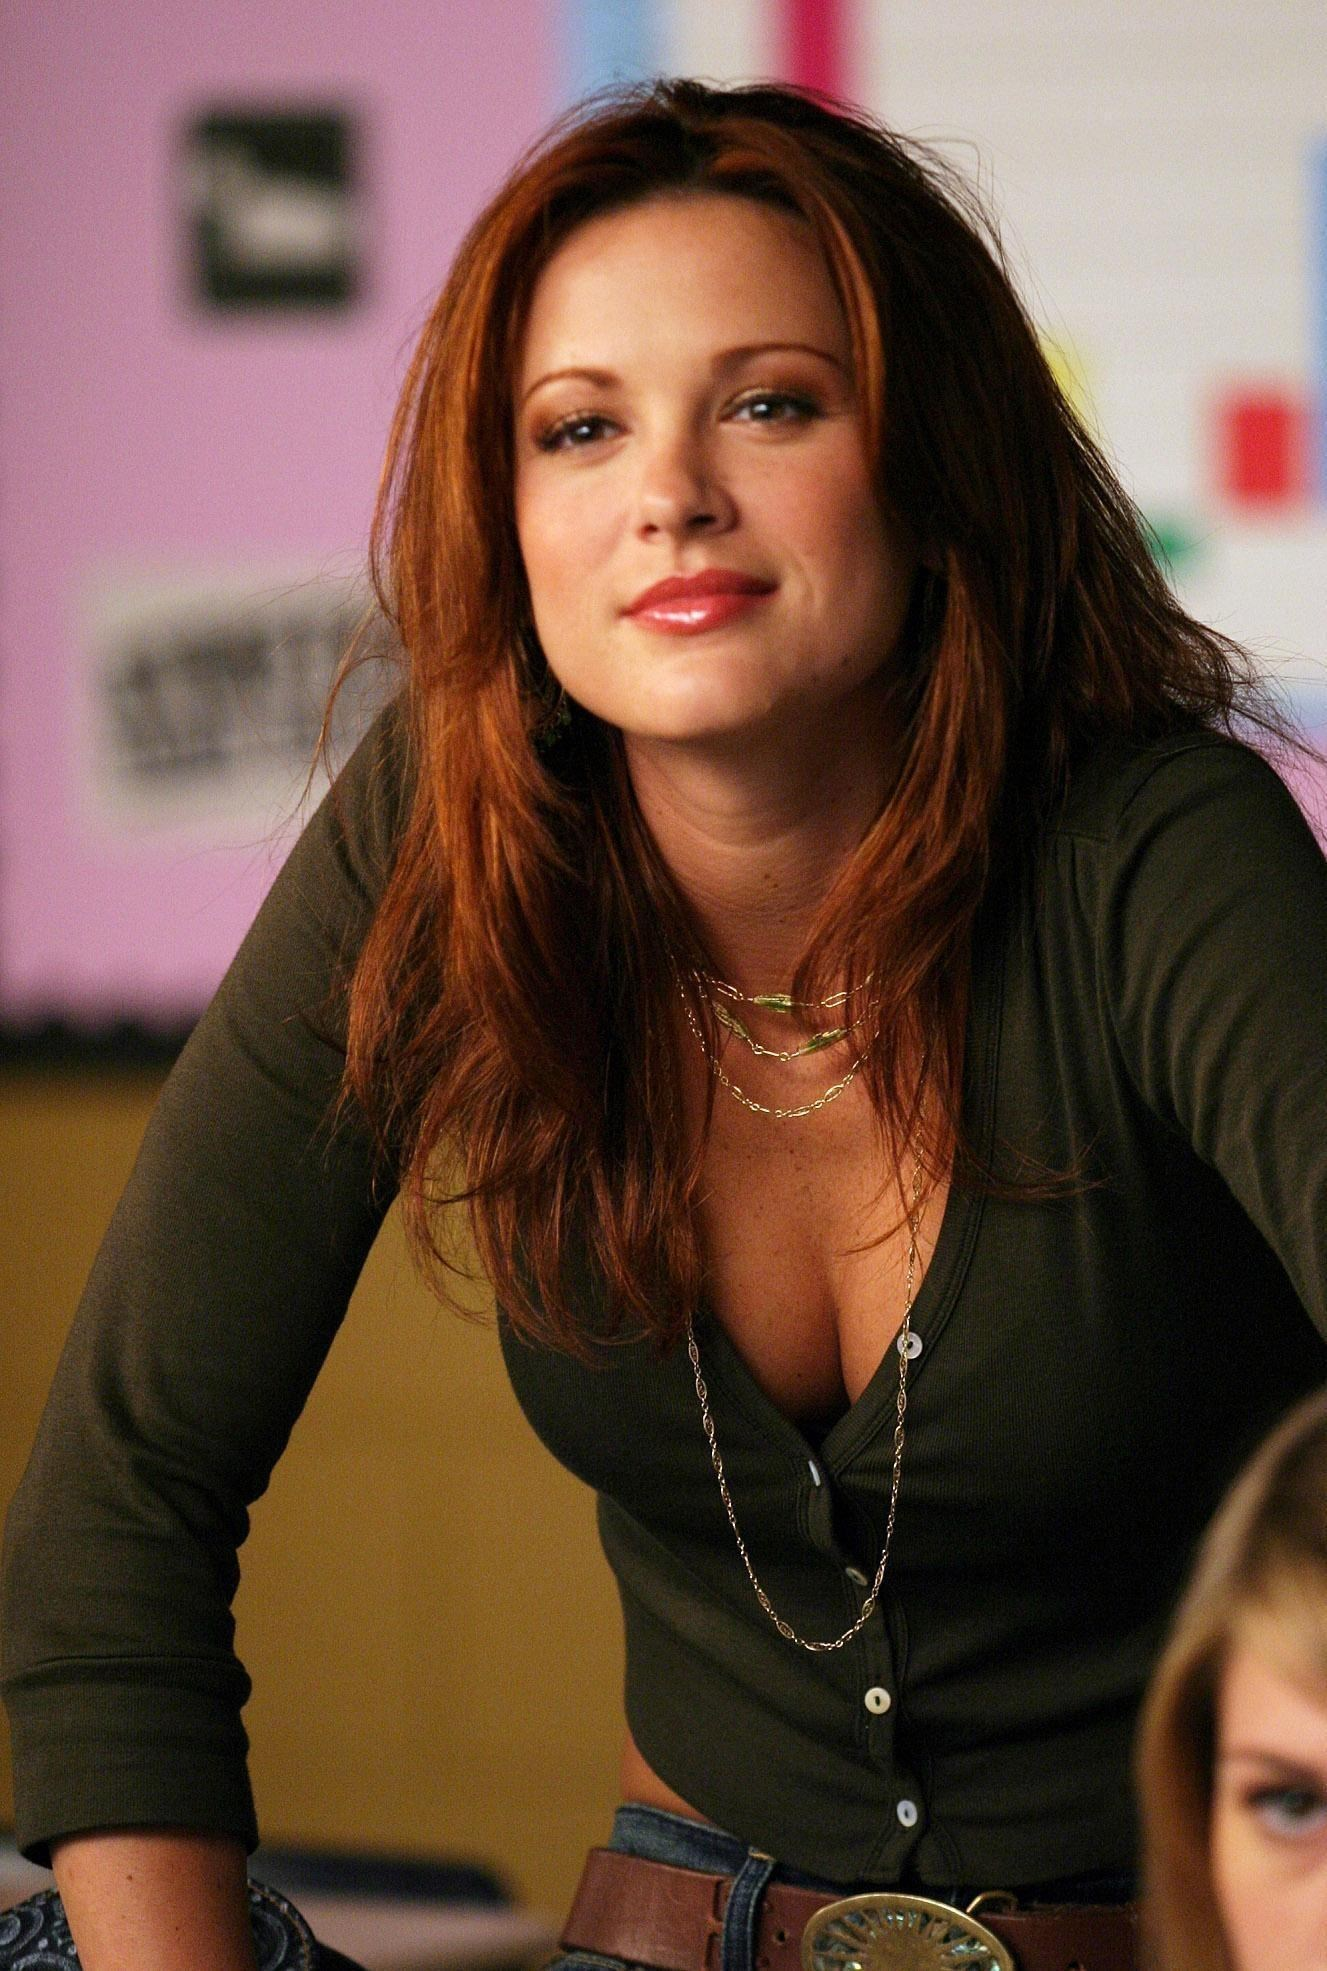 Danneel Ackles | Known people - famous people news and ...